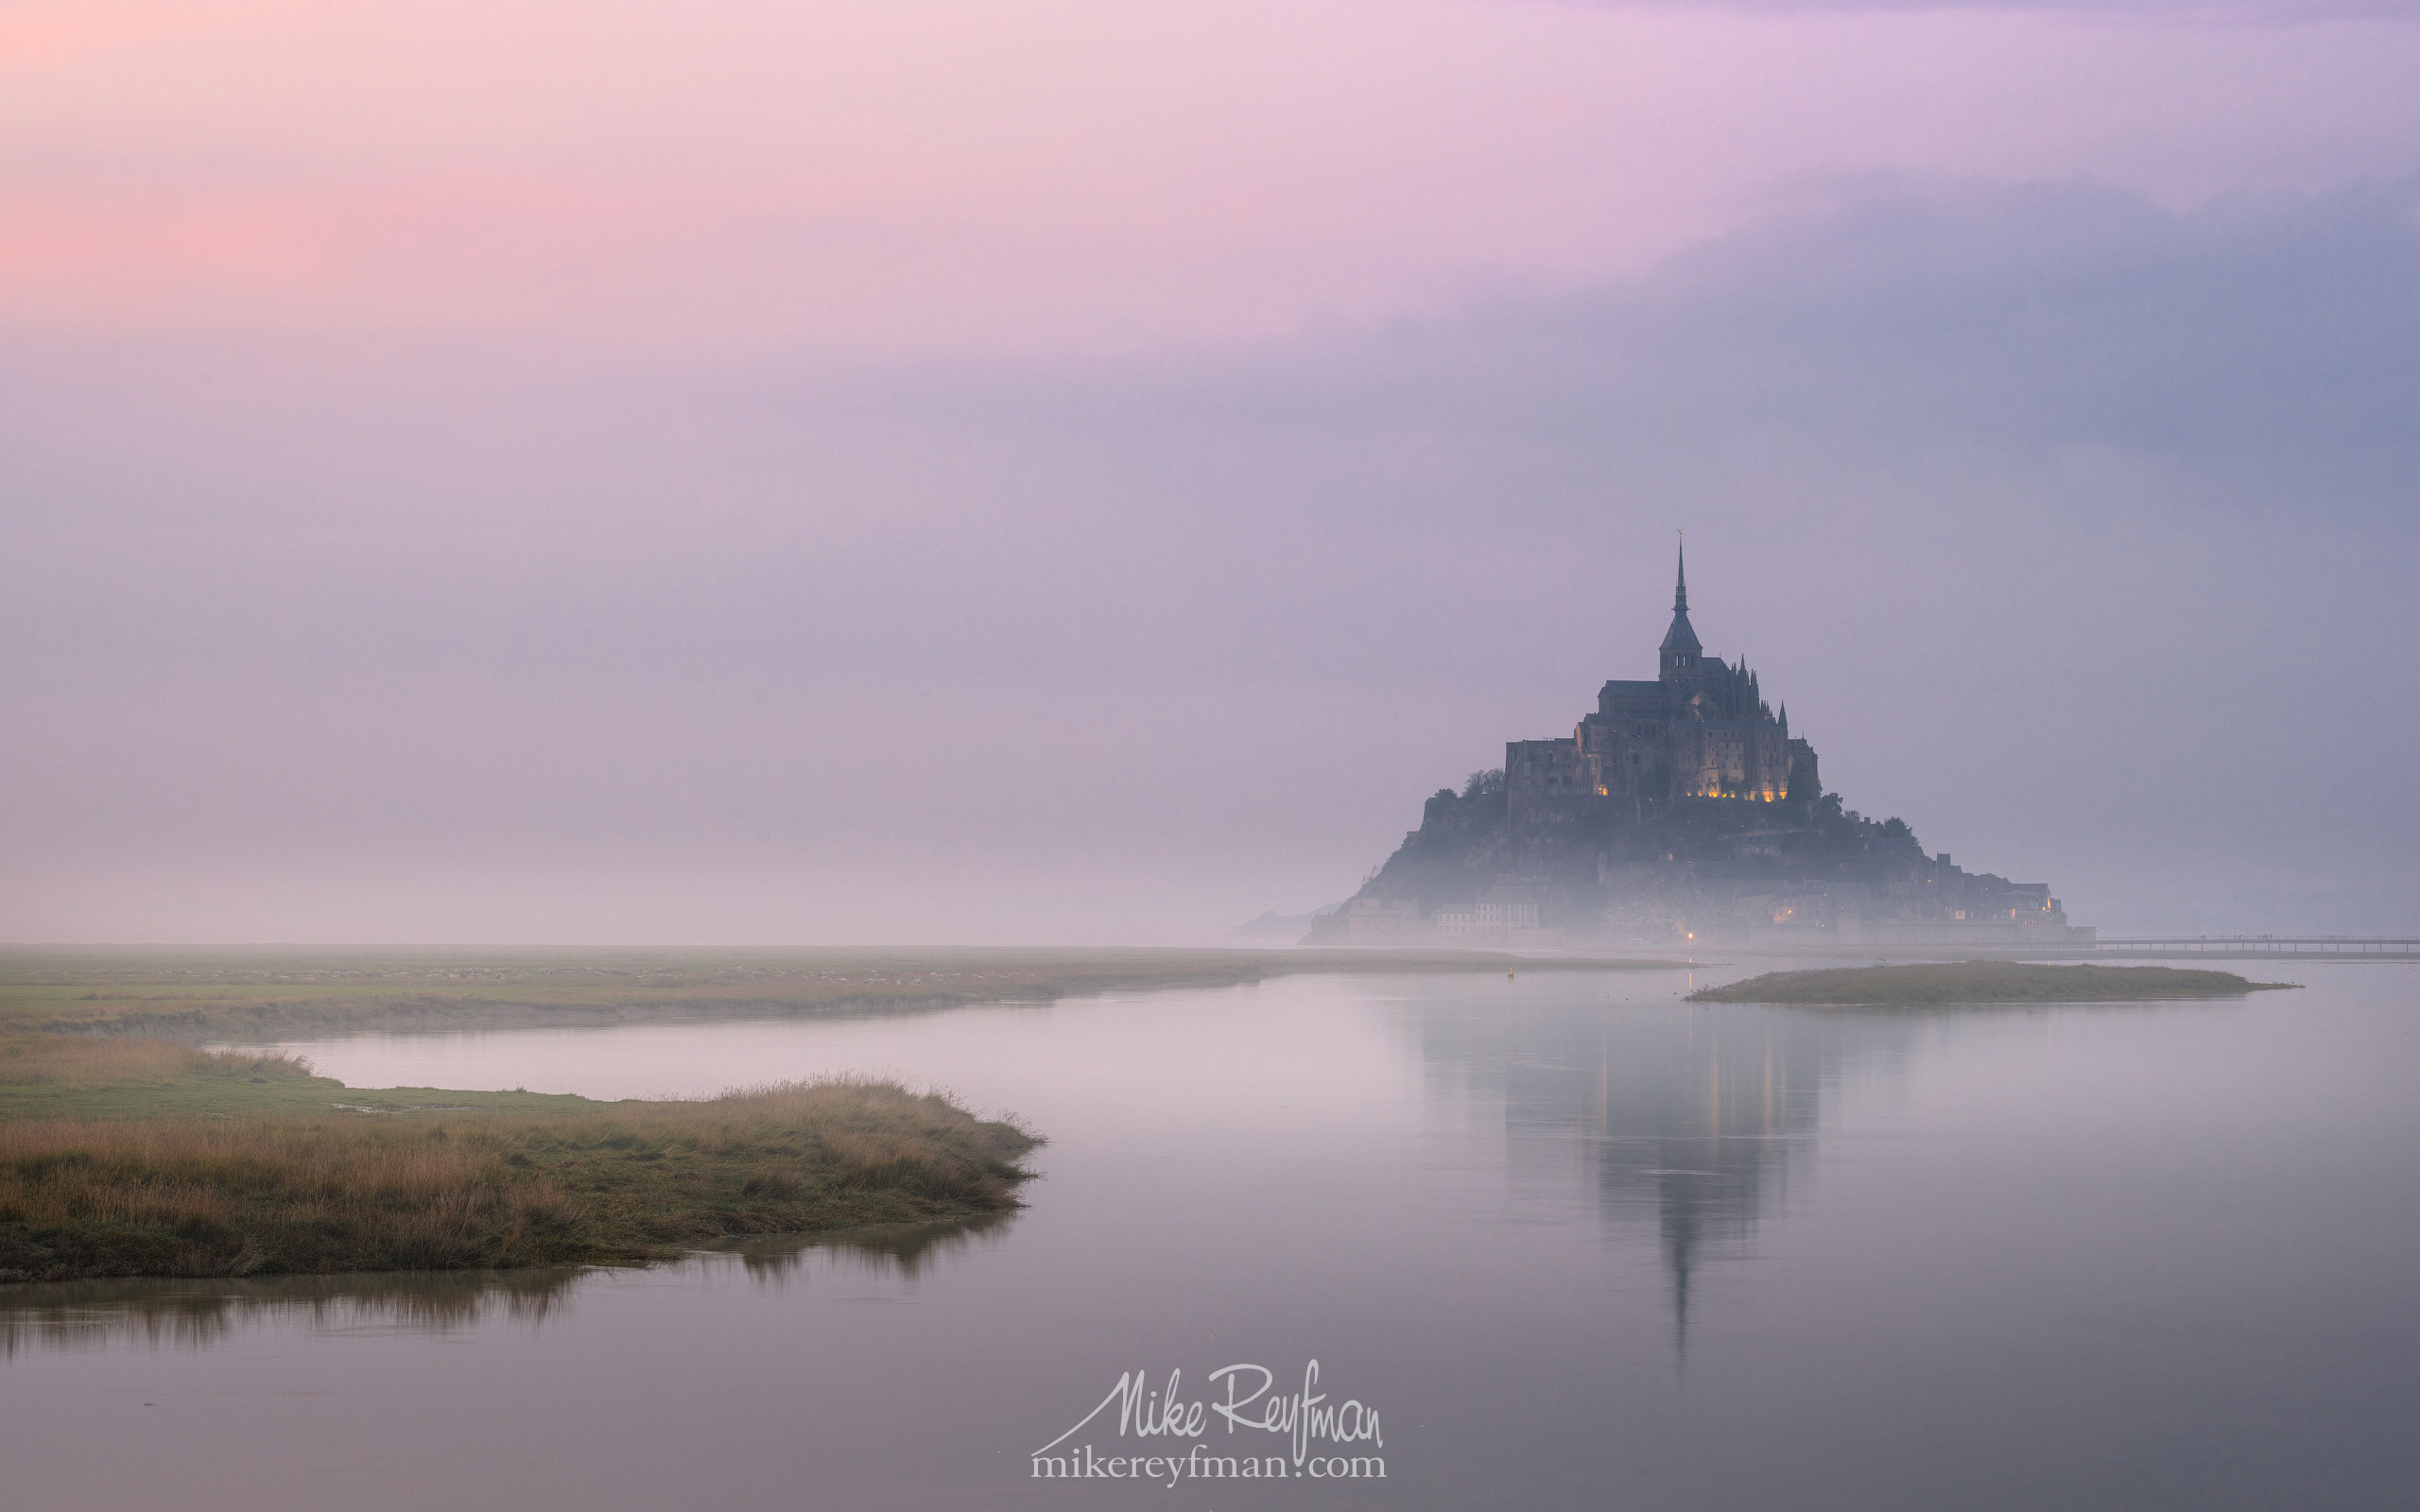 Le Mont-Saint-Michel Island and Benedictine Abbey. Normandy, France SM_MR50A1074 - Le Mont Saint Michel Island and Benedictine Abbey, Normandy, France - Mike Reyfman Photography